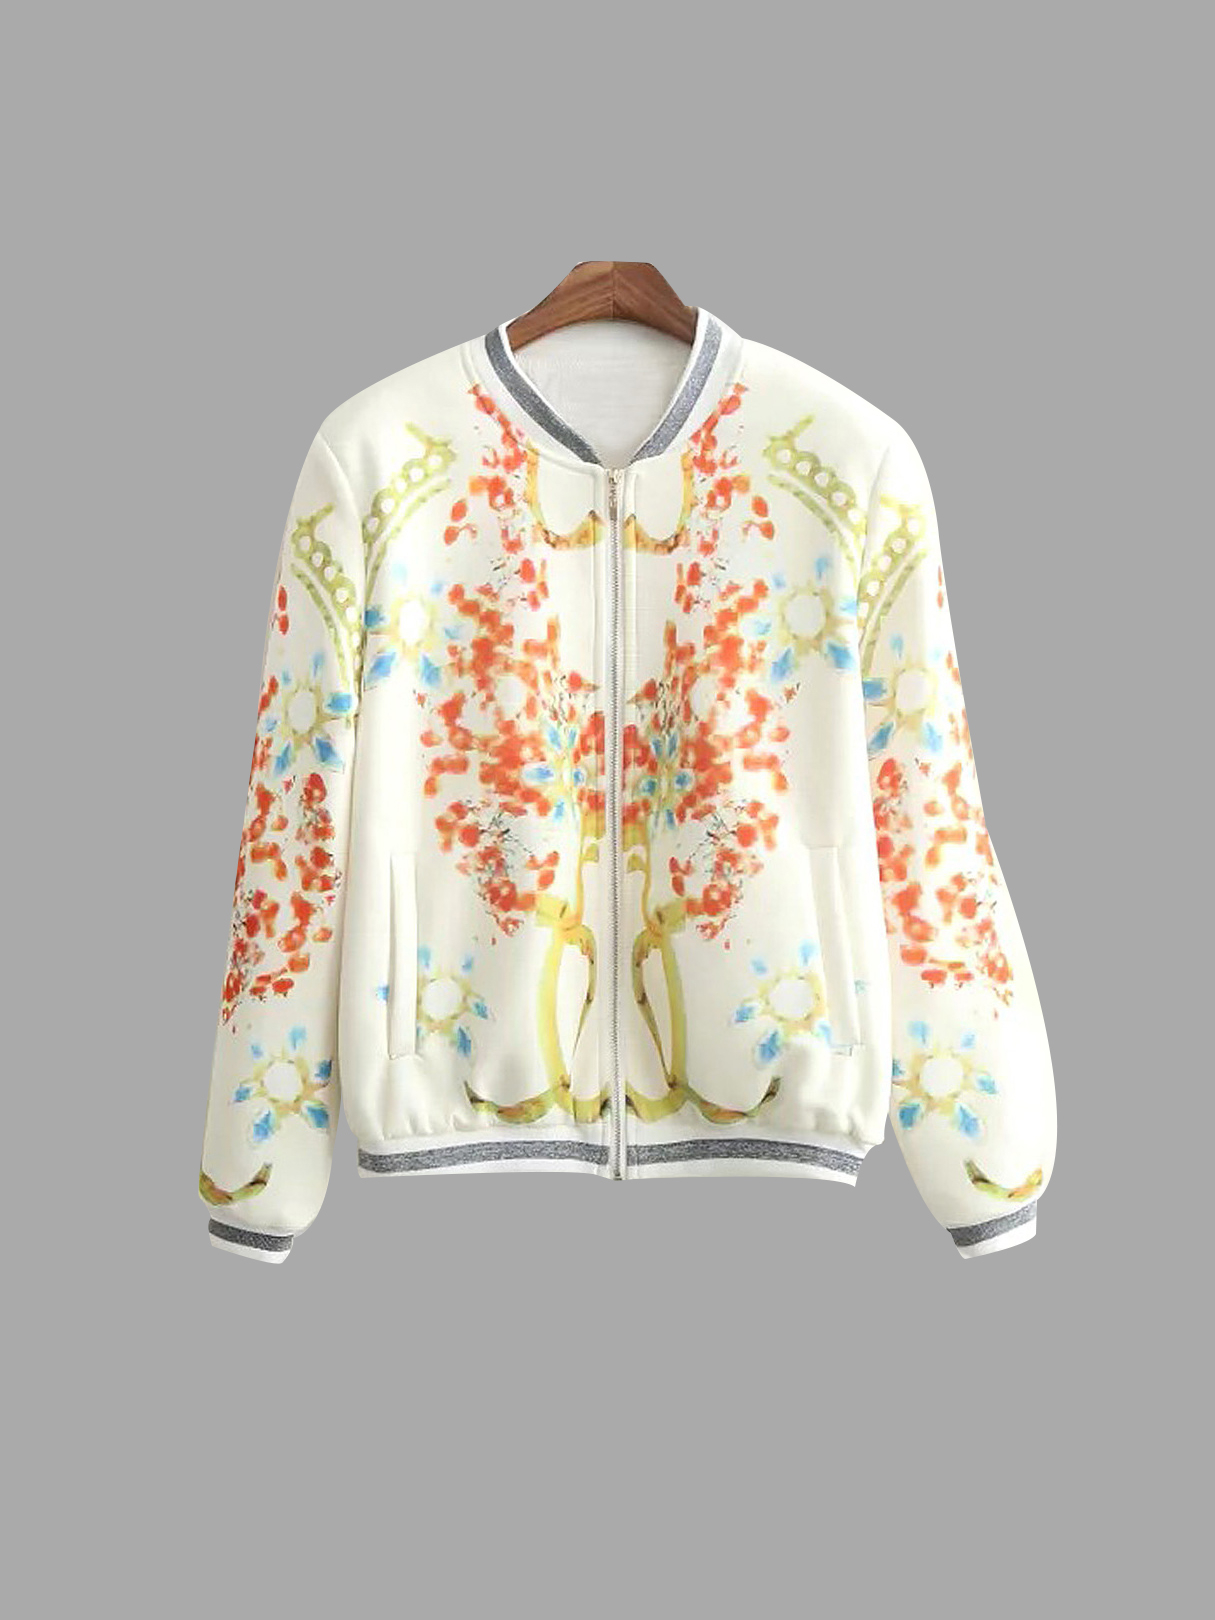 Digital Print Fashion Jacket